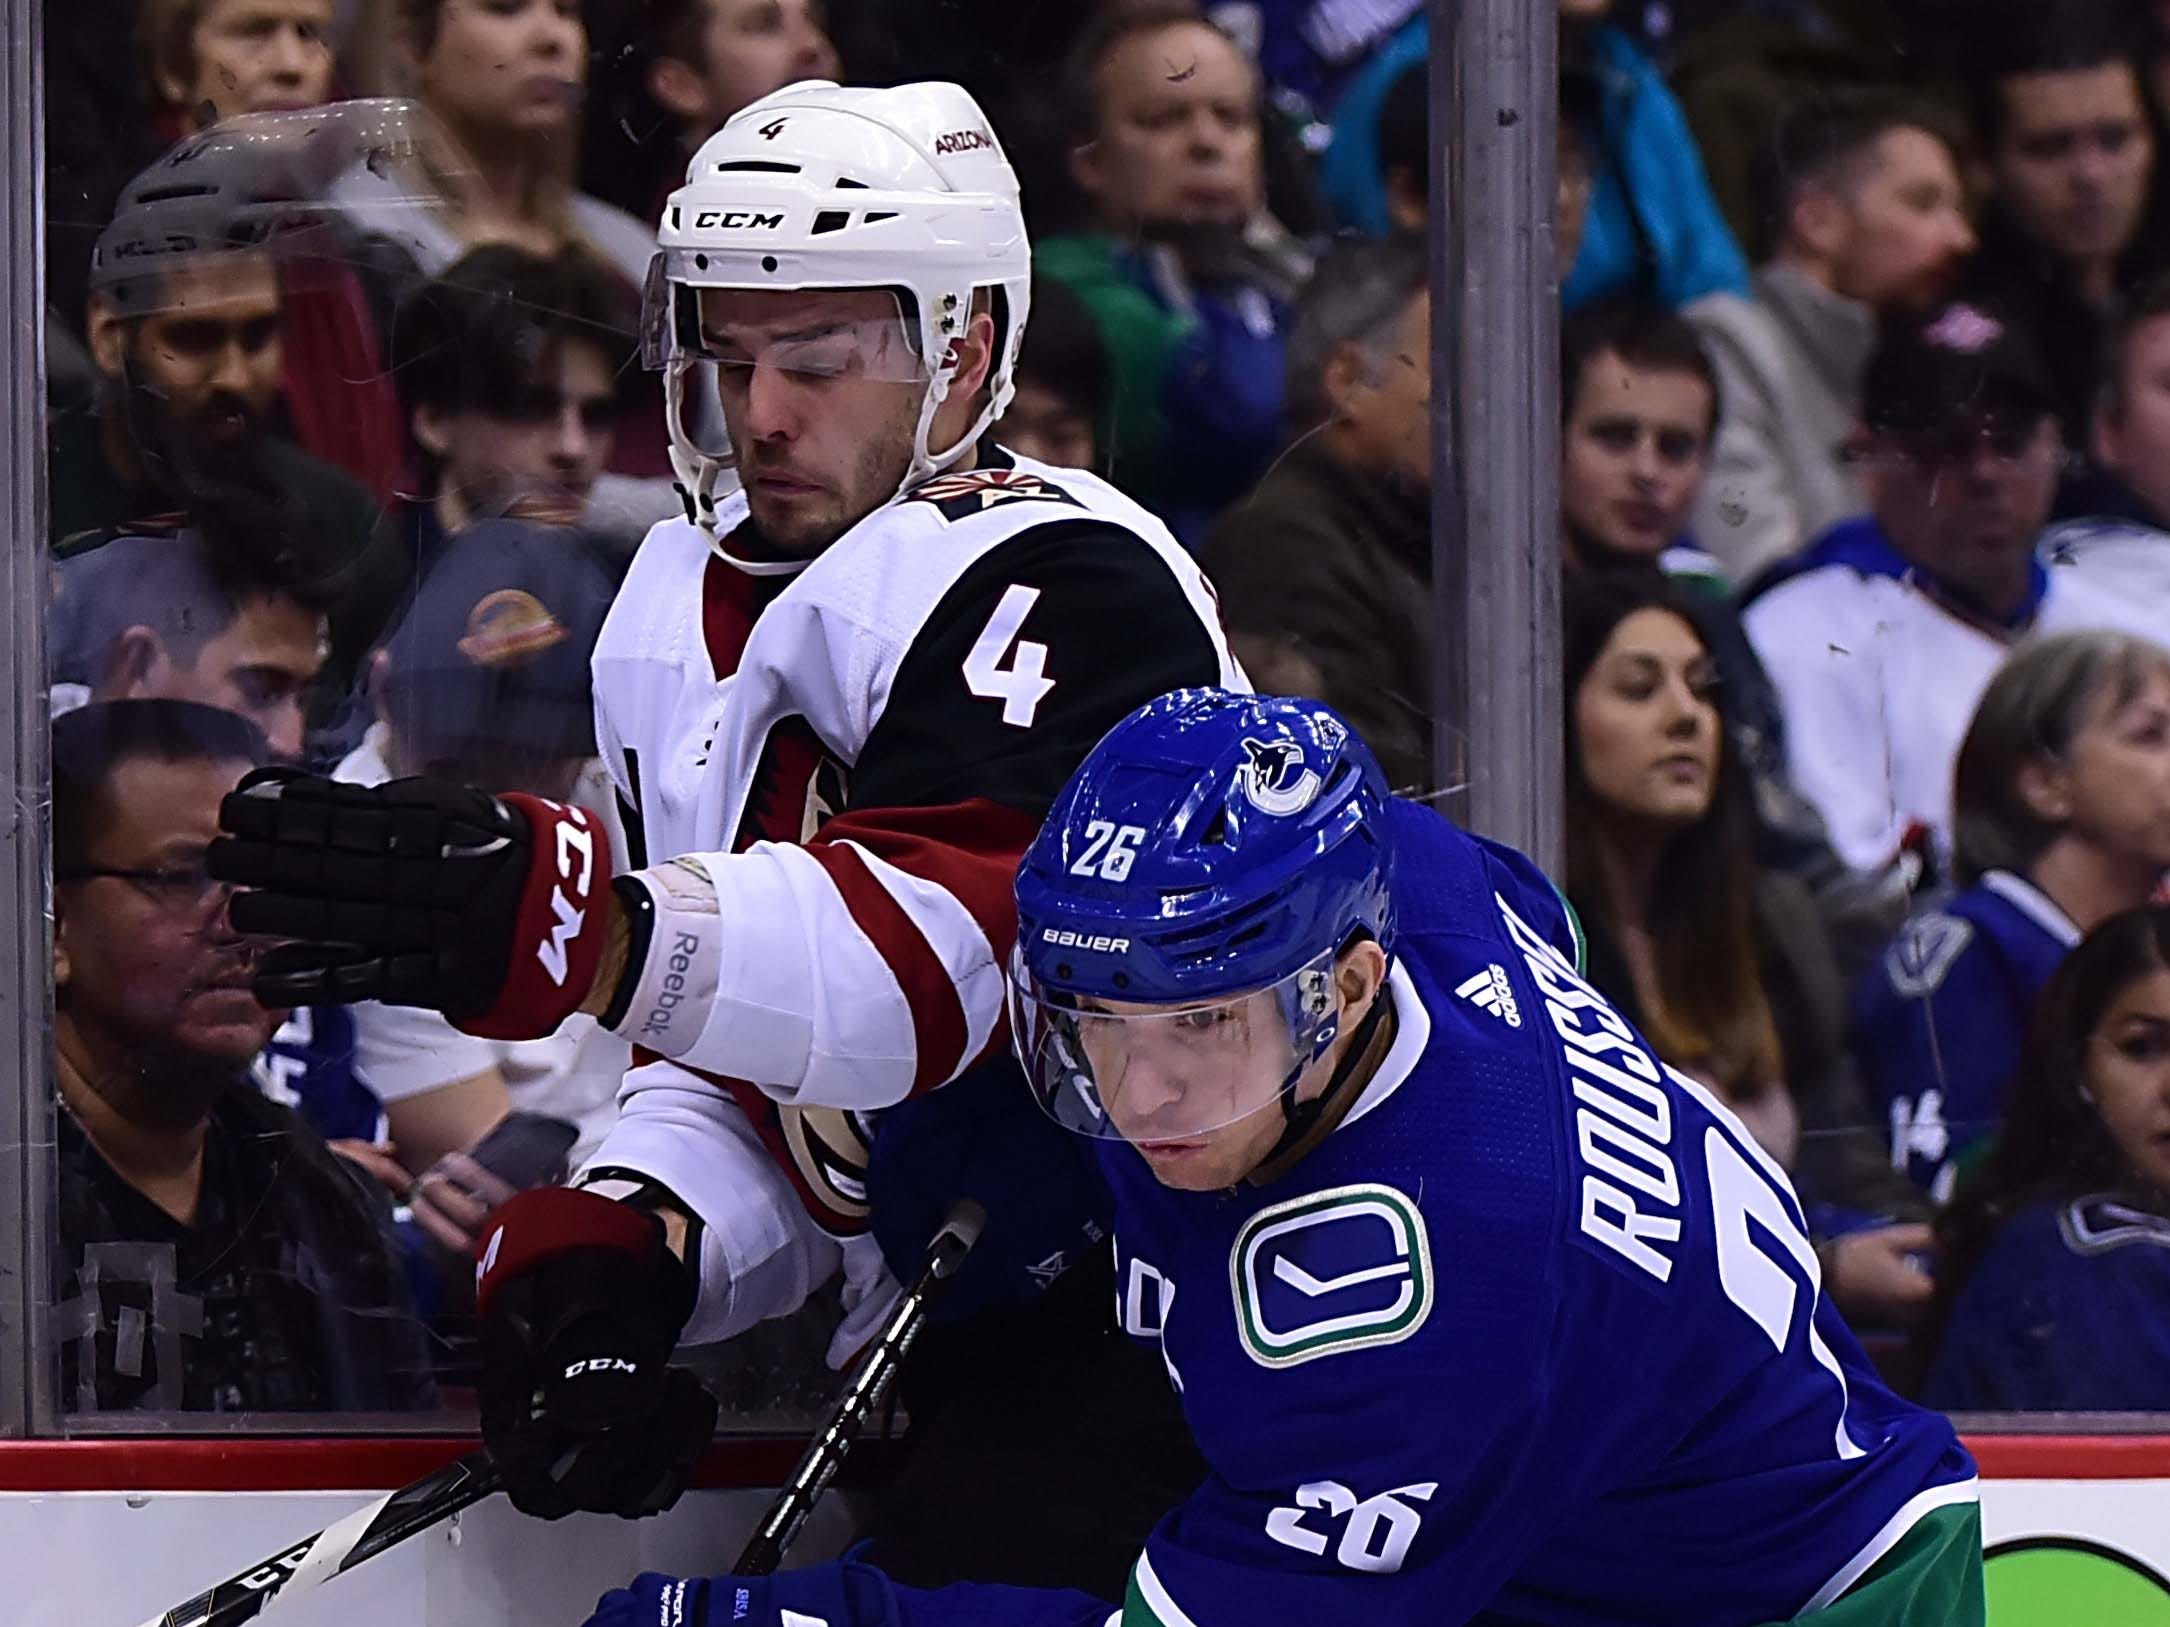 Feb 21, 2019; Vancouver, British Columbia, CAN; Vancouver Canucks forward Antoine Roussel (26) checks Arizona Coyotes defenseman Niklas Hjalmarsson (4) during the first period at Rogers Arena. Mandatory Credit: Anne-Marie Sorvin-USA TODAY Sports